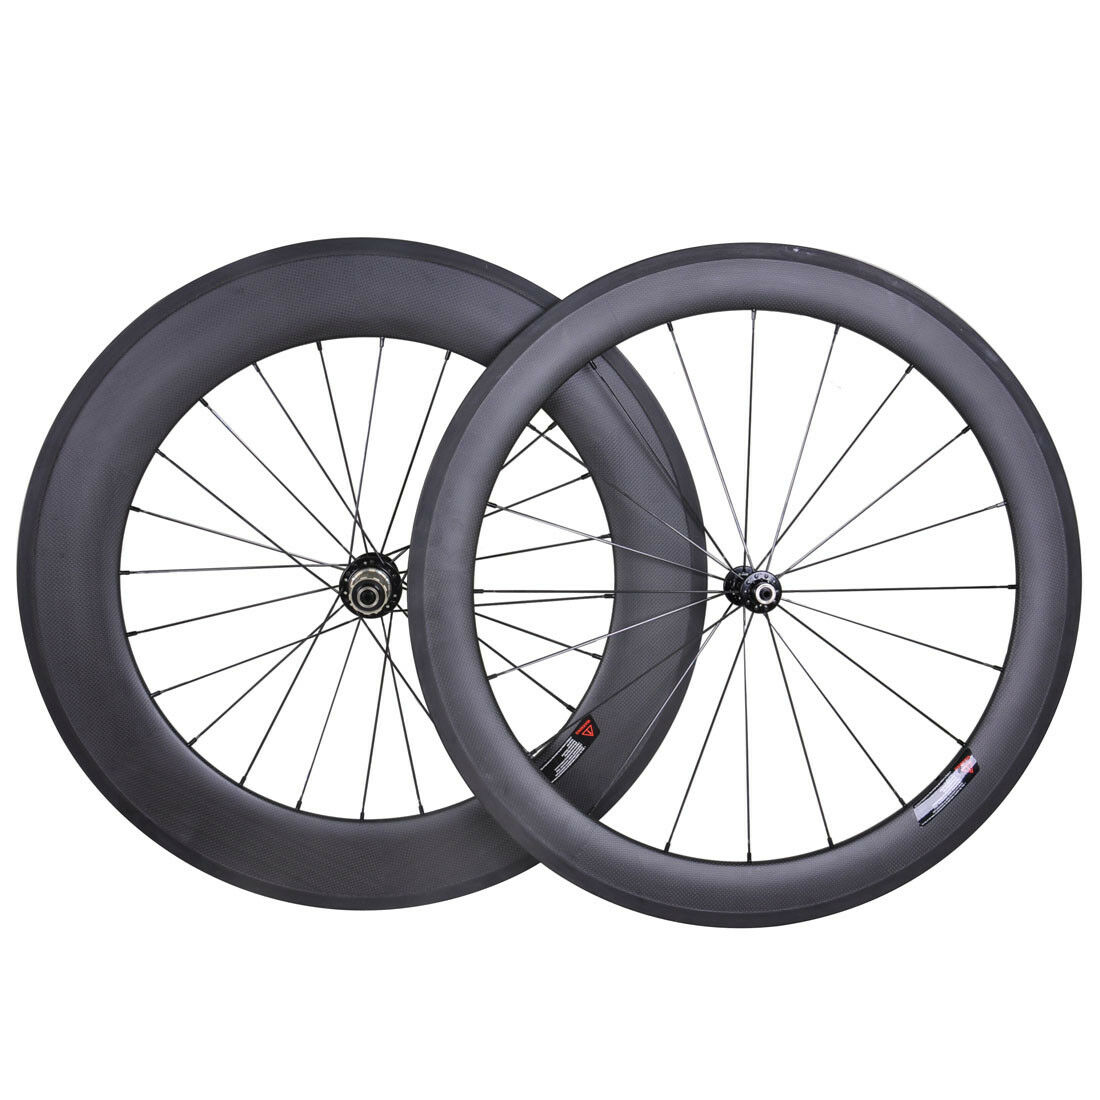 60mm Front 88mm Rear Clincher Wheel Set Full Carbon Road Bicycle Rim Basalt 700C